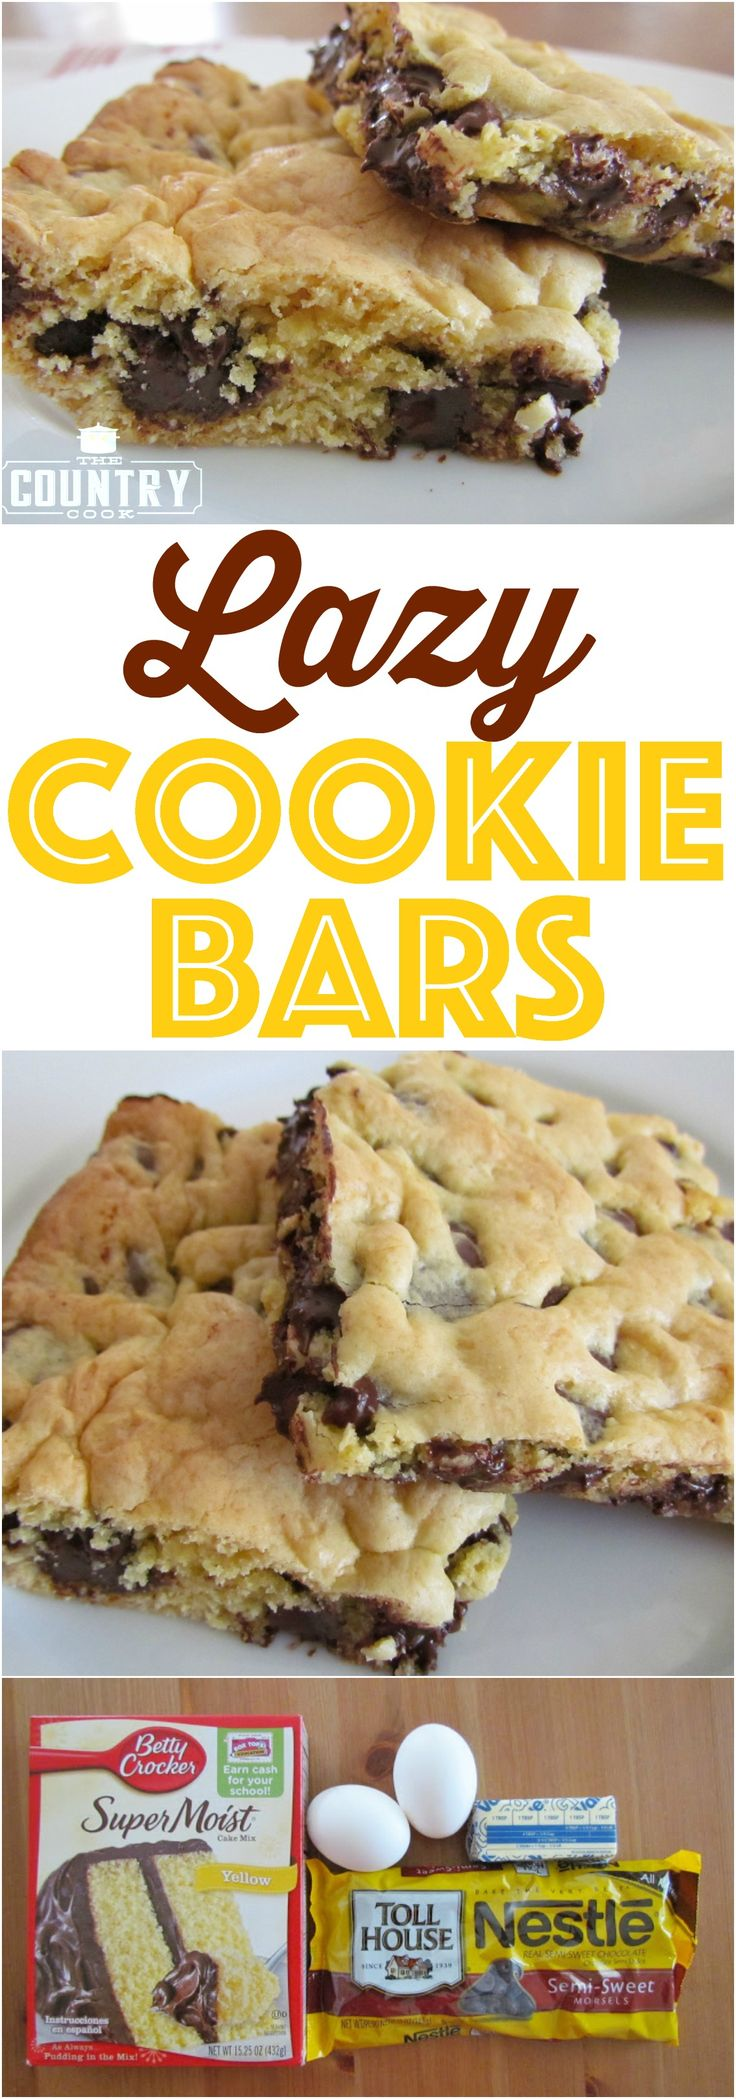 Lazy Chocolate Chip Cookie Bars are made with a boxed cake mix and butter and chocolate chips. So tender and yummy. We make these all the time! (Baking Eggs Butter)